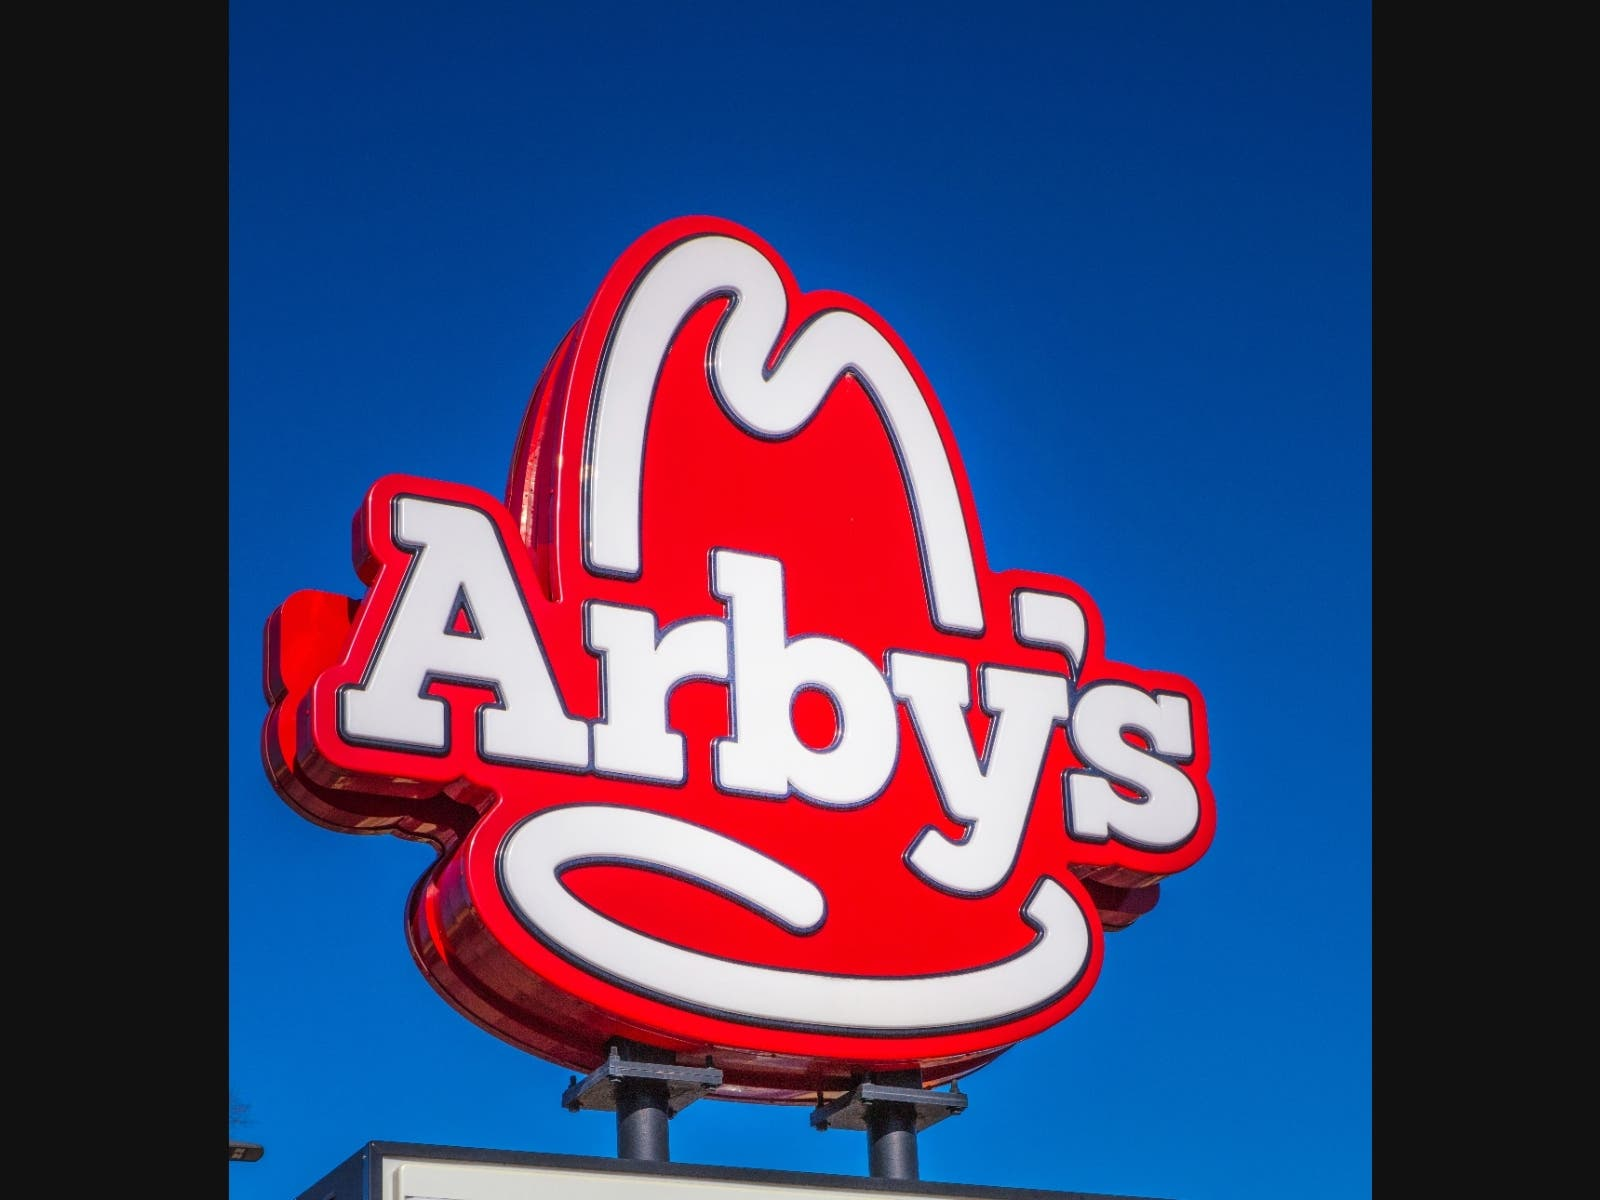 Phoenix Arby's Donating Portion Of Sales To St. Mary's Food Bank